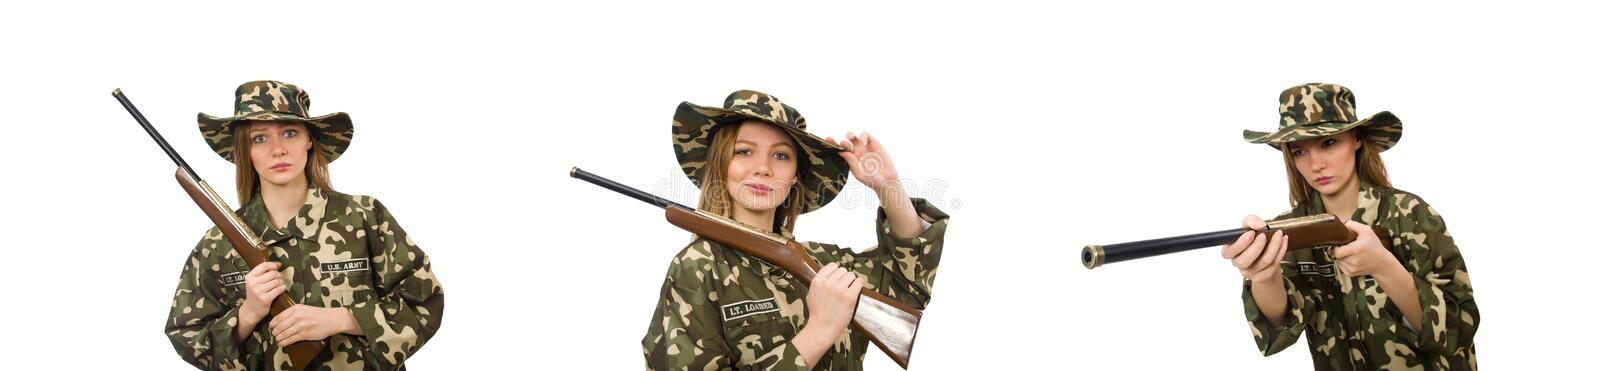 Girl in military uniform holding the gun isolated on white royalty free stock photos